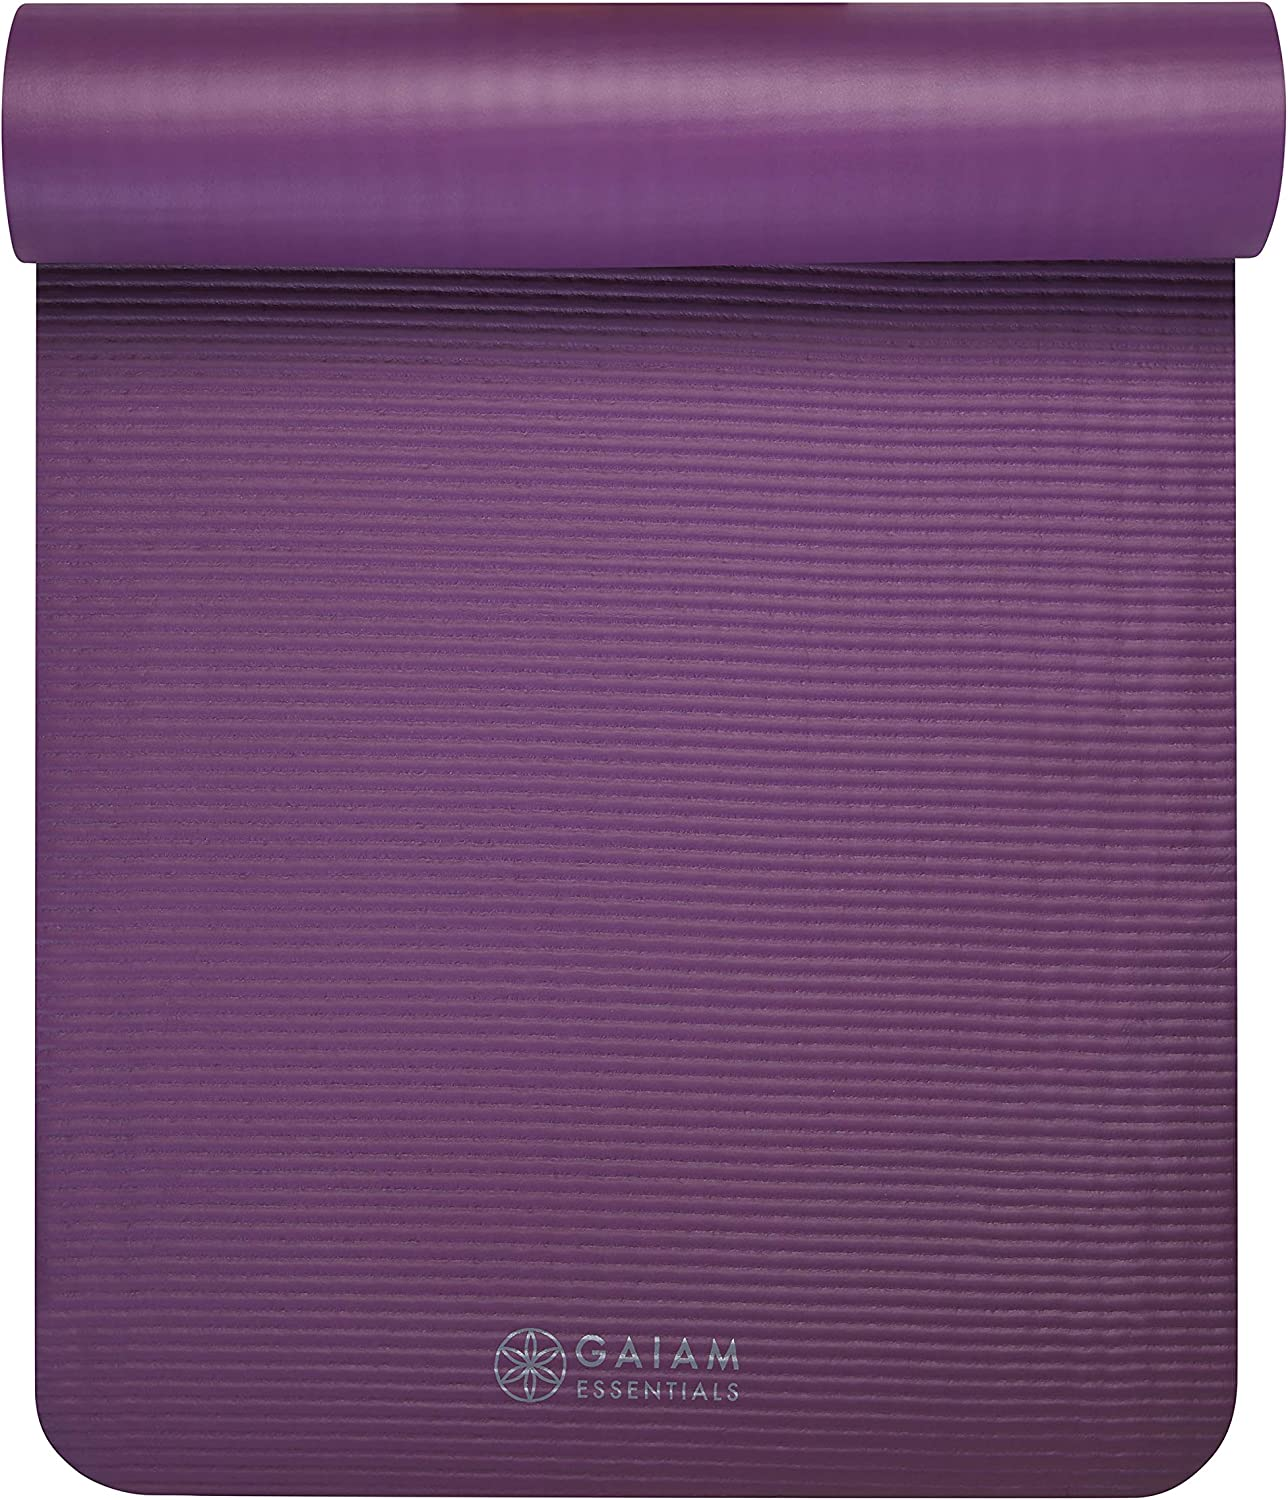 Gaiam Essentials Thick Yoga Mat Fitness /& Exercise Mat with Easy-Cinch Yoga Mat Carrier Strap 72 L x 24 W x 2//5 Inch Thick